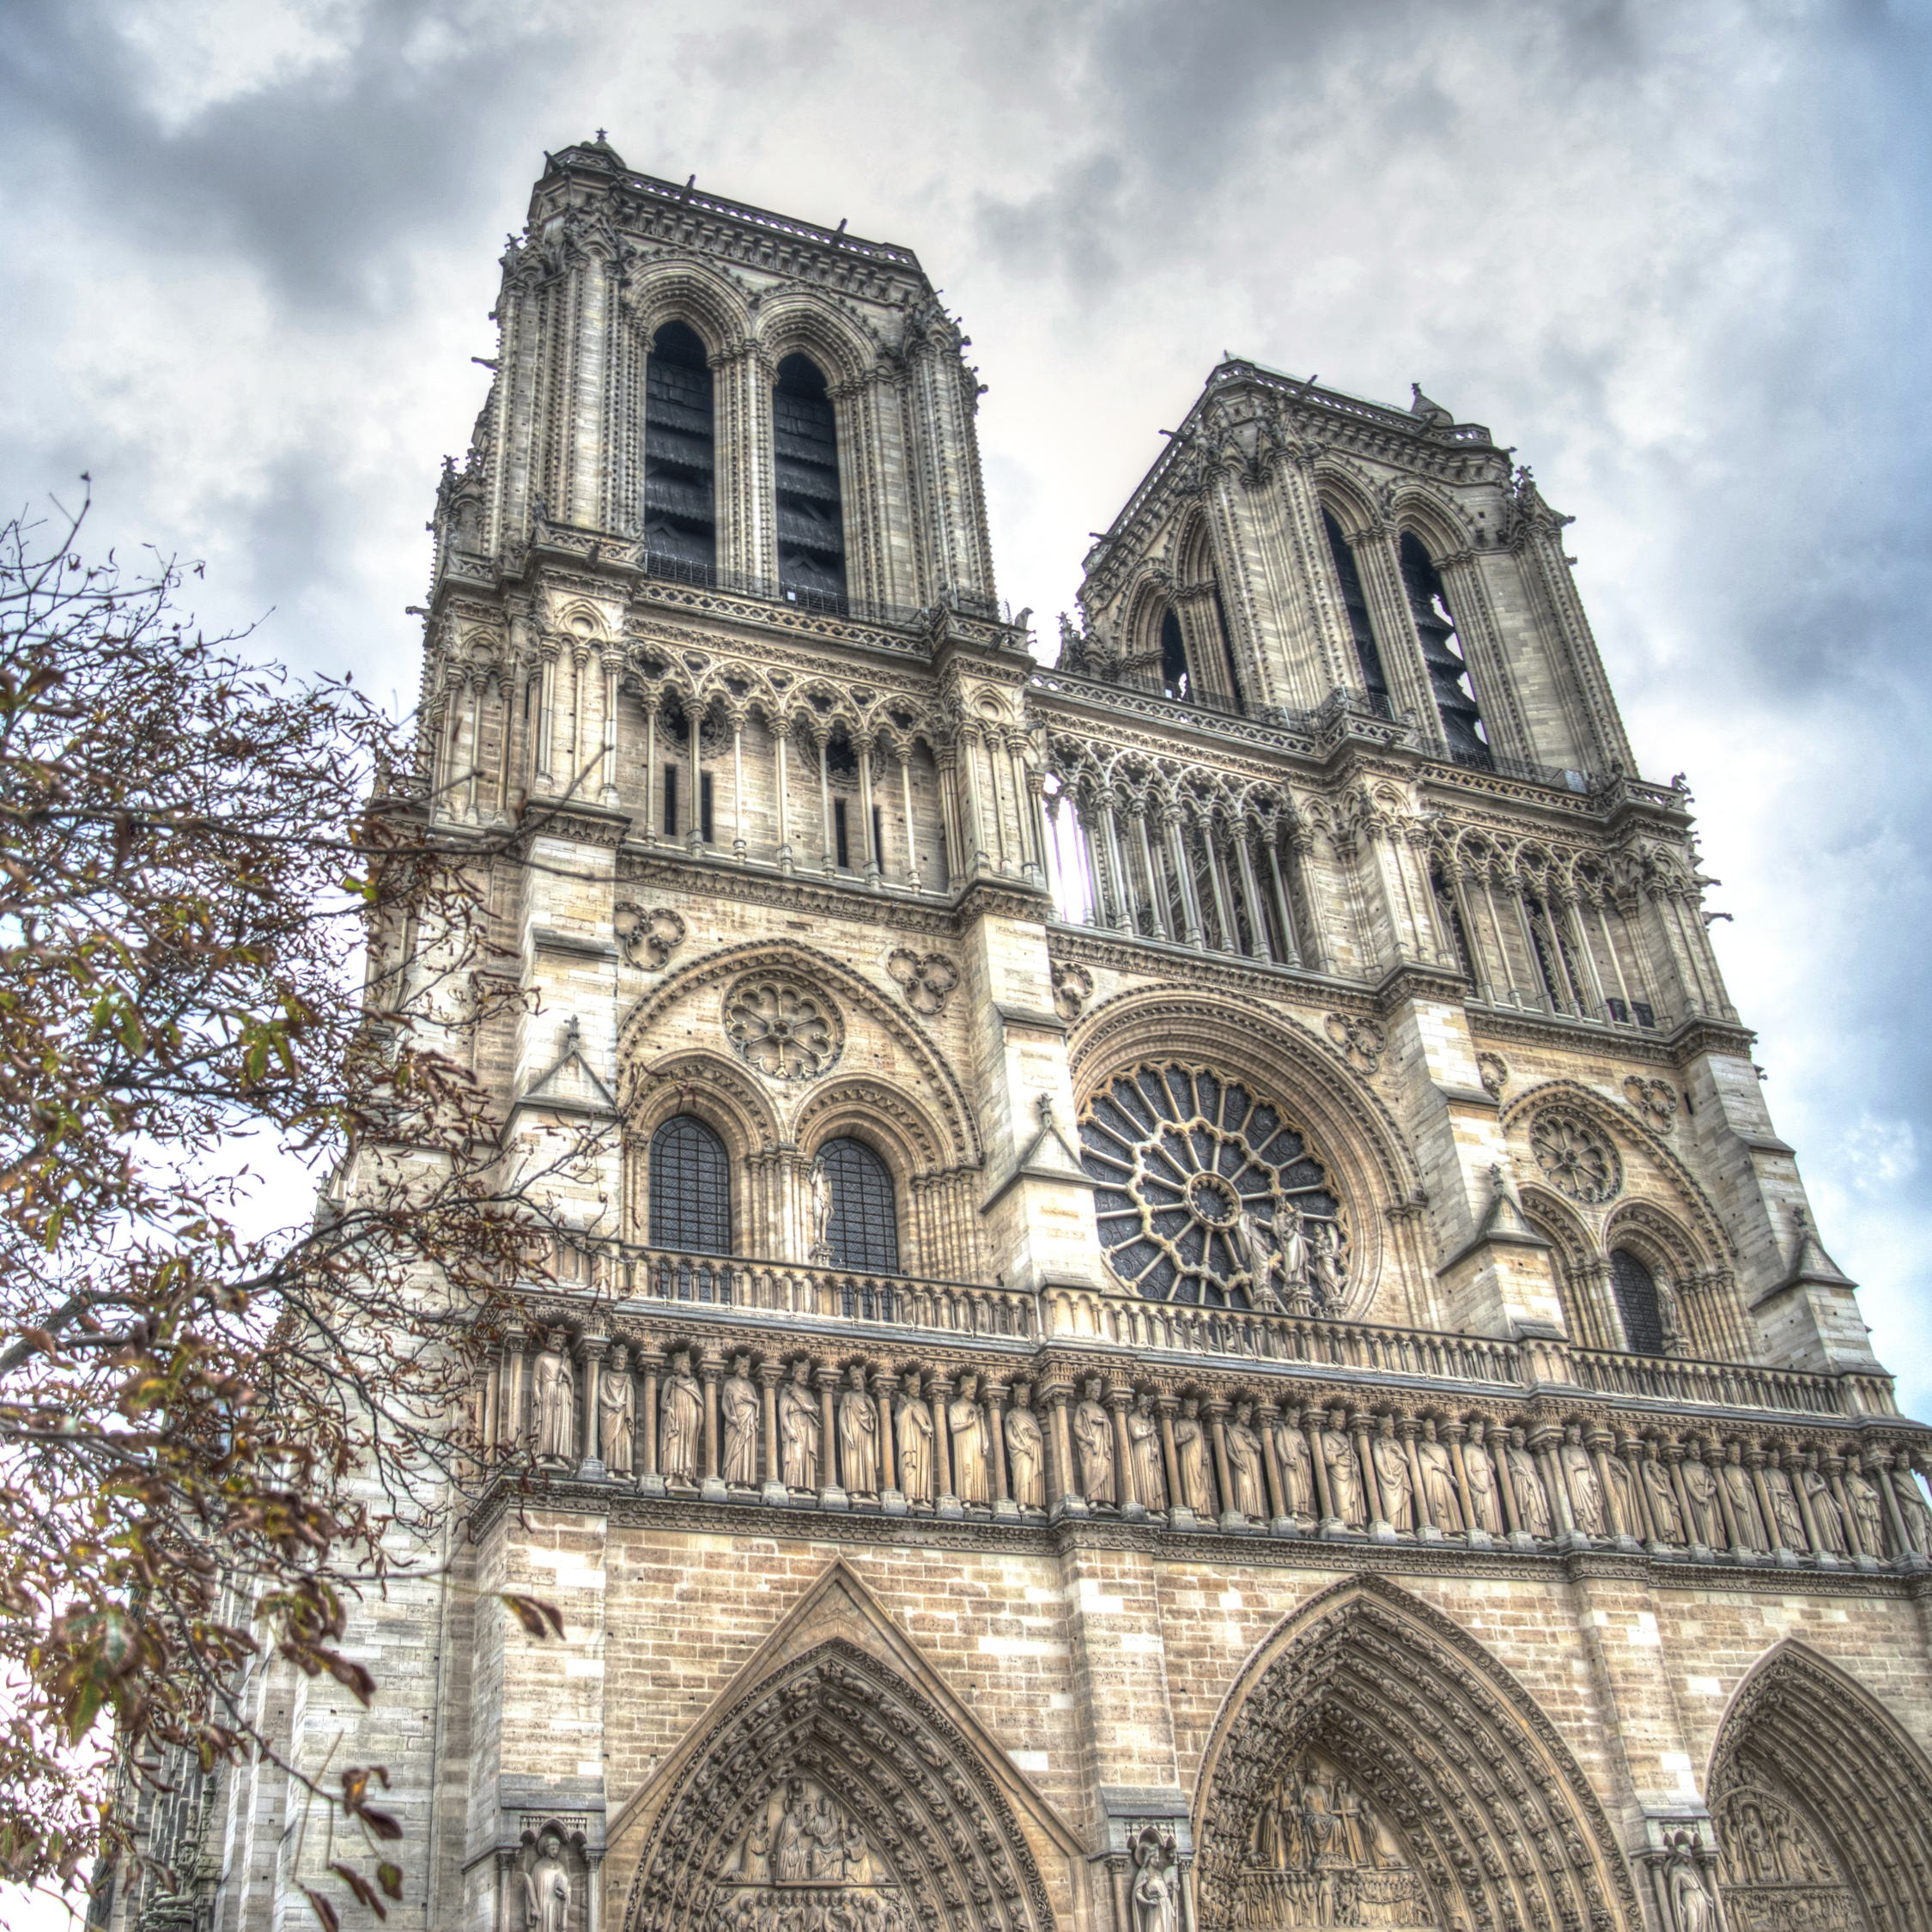 notre dame - Join us on our tour of Notre Dame. Francois and Sophie will guide you through Notre Dame's history, pointing out the architectural innovations and quirky tales that have made Notre Dame the world's most famous cathedral.Duration : 35 minutesDistance : 1 kmOpening hours : 7.45am - 18.45pmBest time to visit : Before 10.30am, after 17.00pmNotre Dame entrance fee : Free